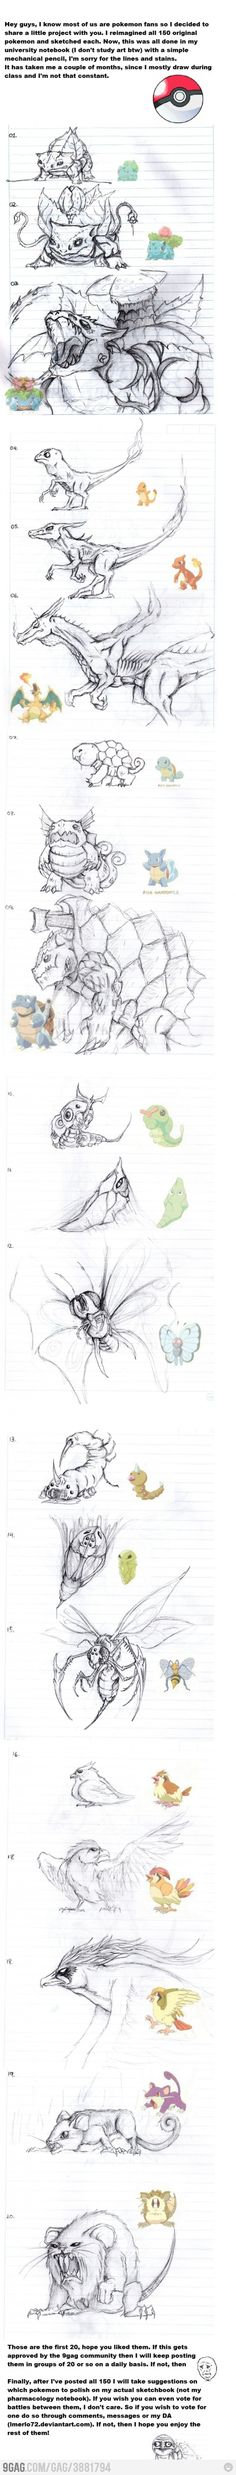 Pokemon Reimagined. Not really photography, but still amazing